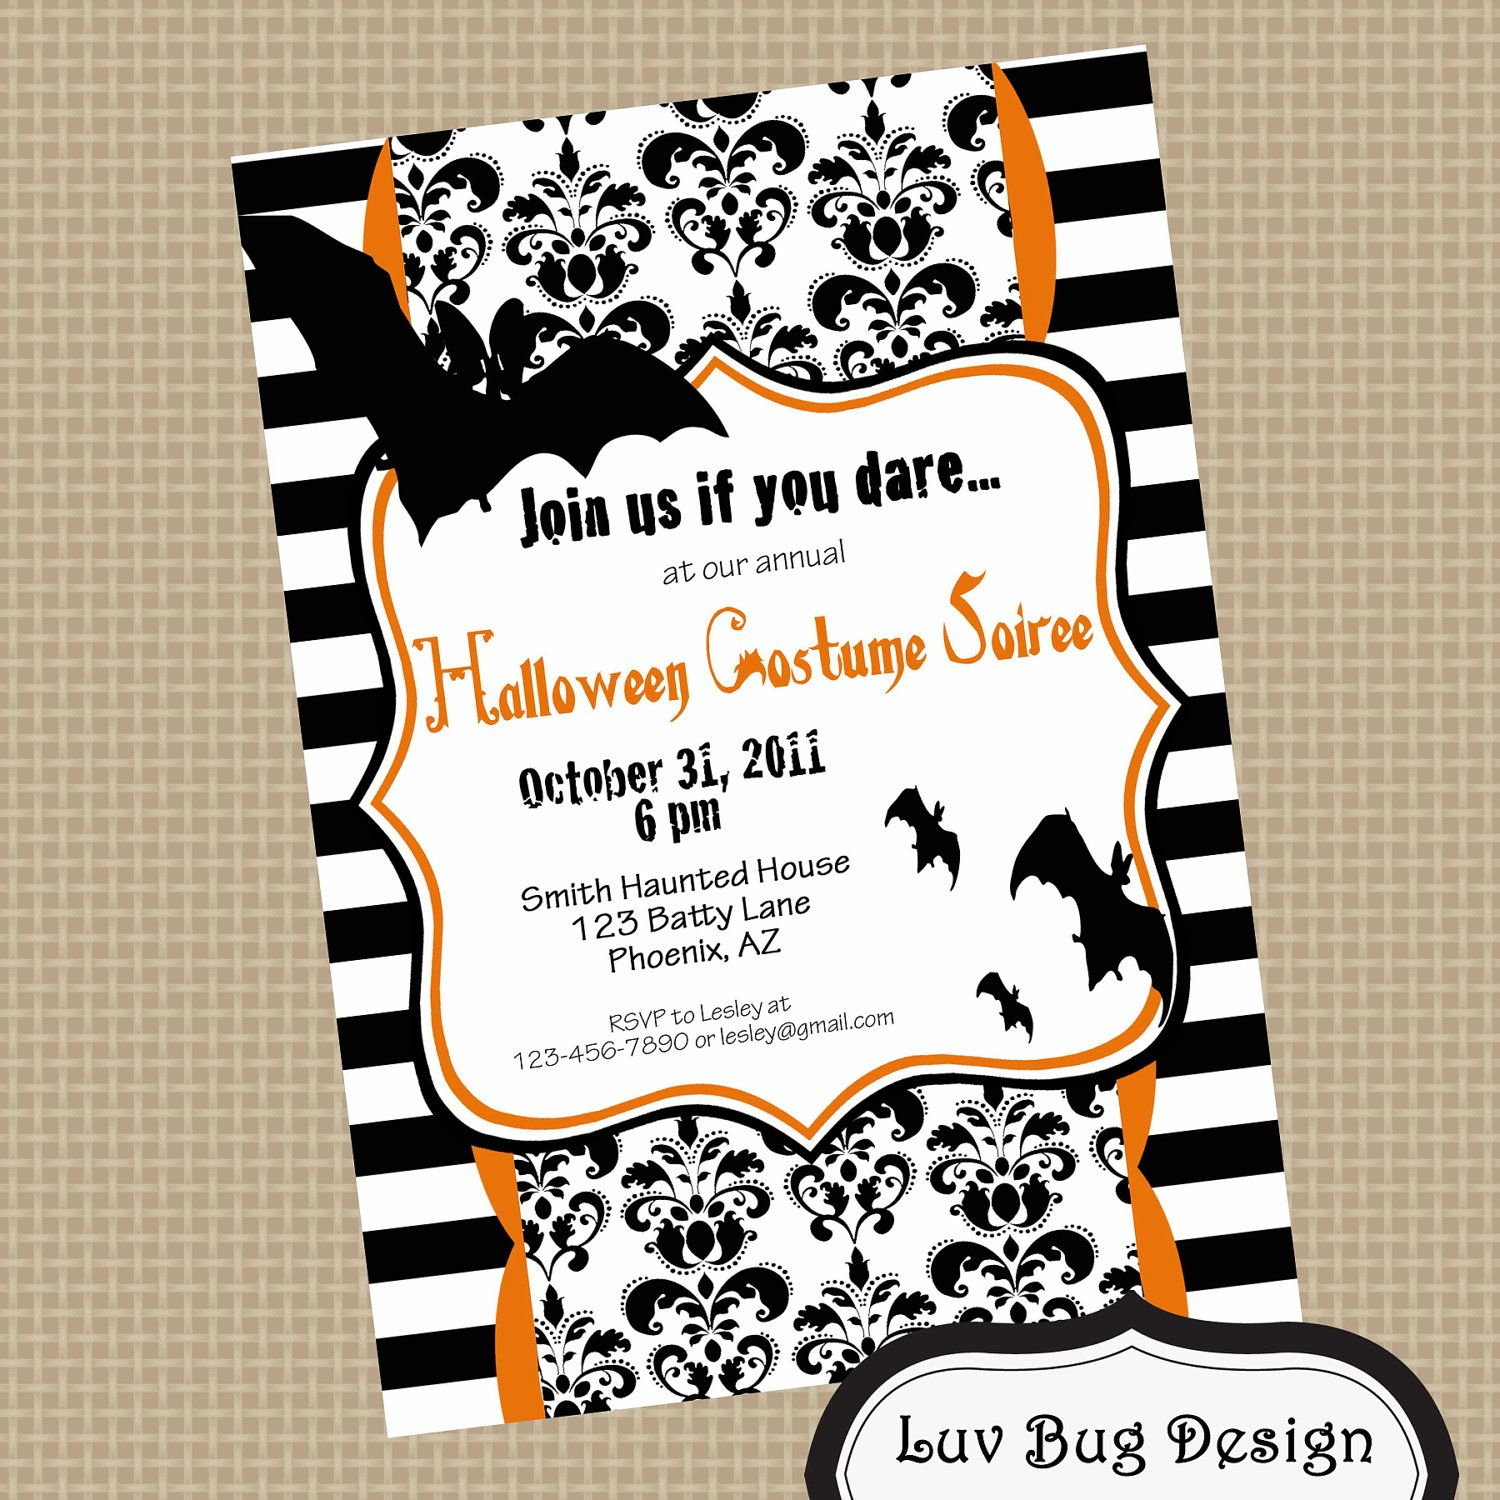 best images about halloween party halloween 17 best images about halloween party halloween party invitations halloween party and printable invitations